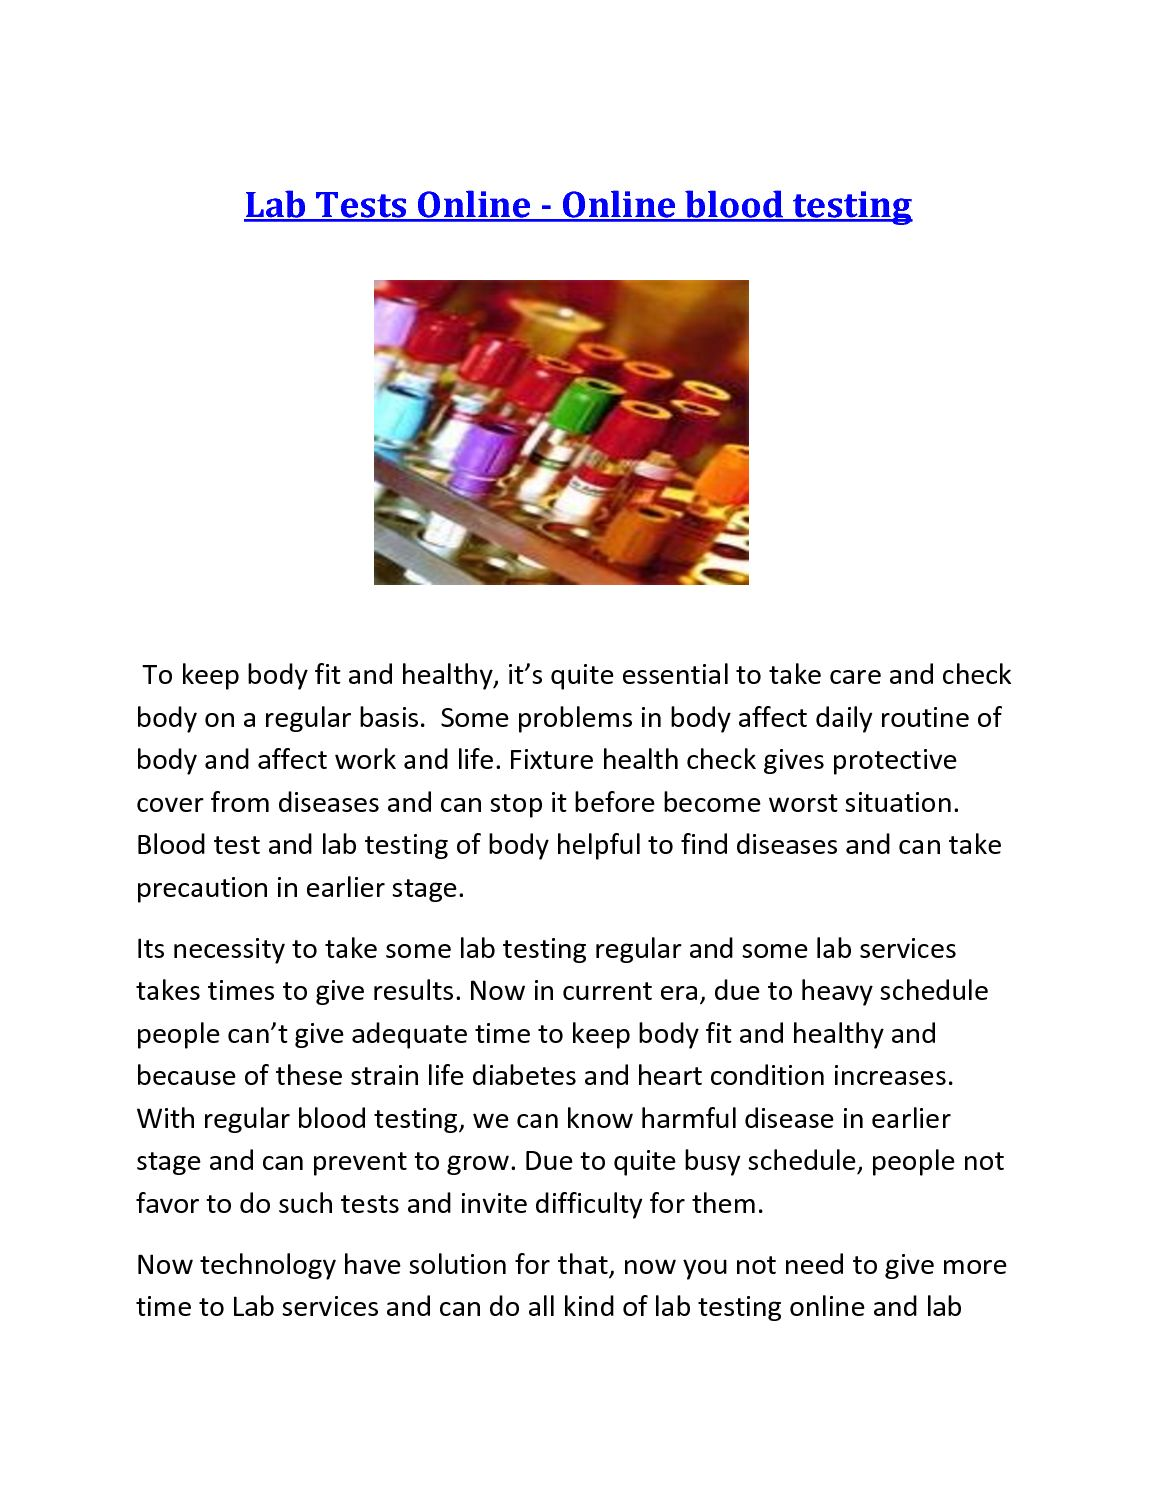 Calaméo - Lab Tests Online - Online Blood Testing